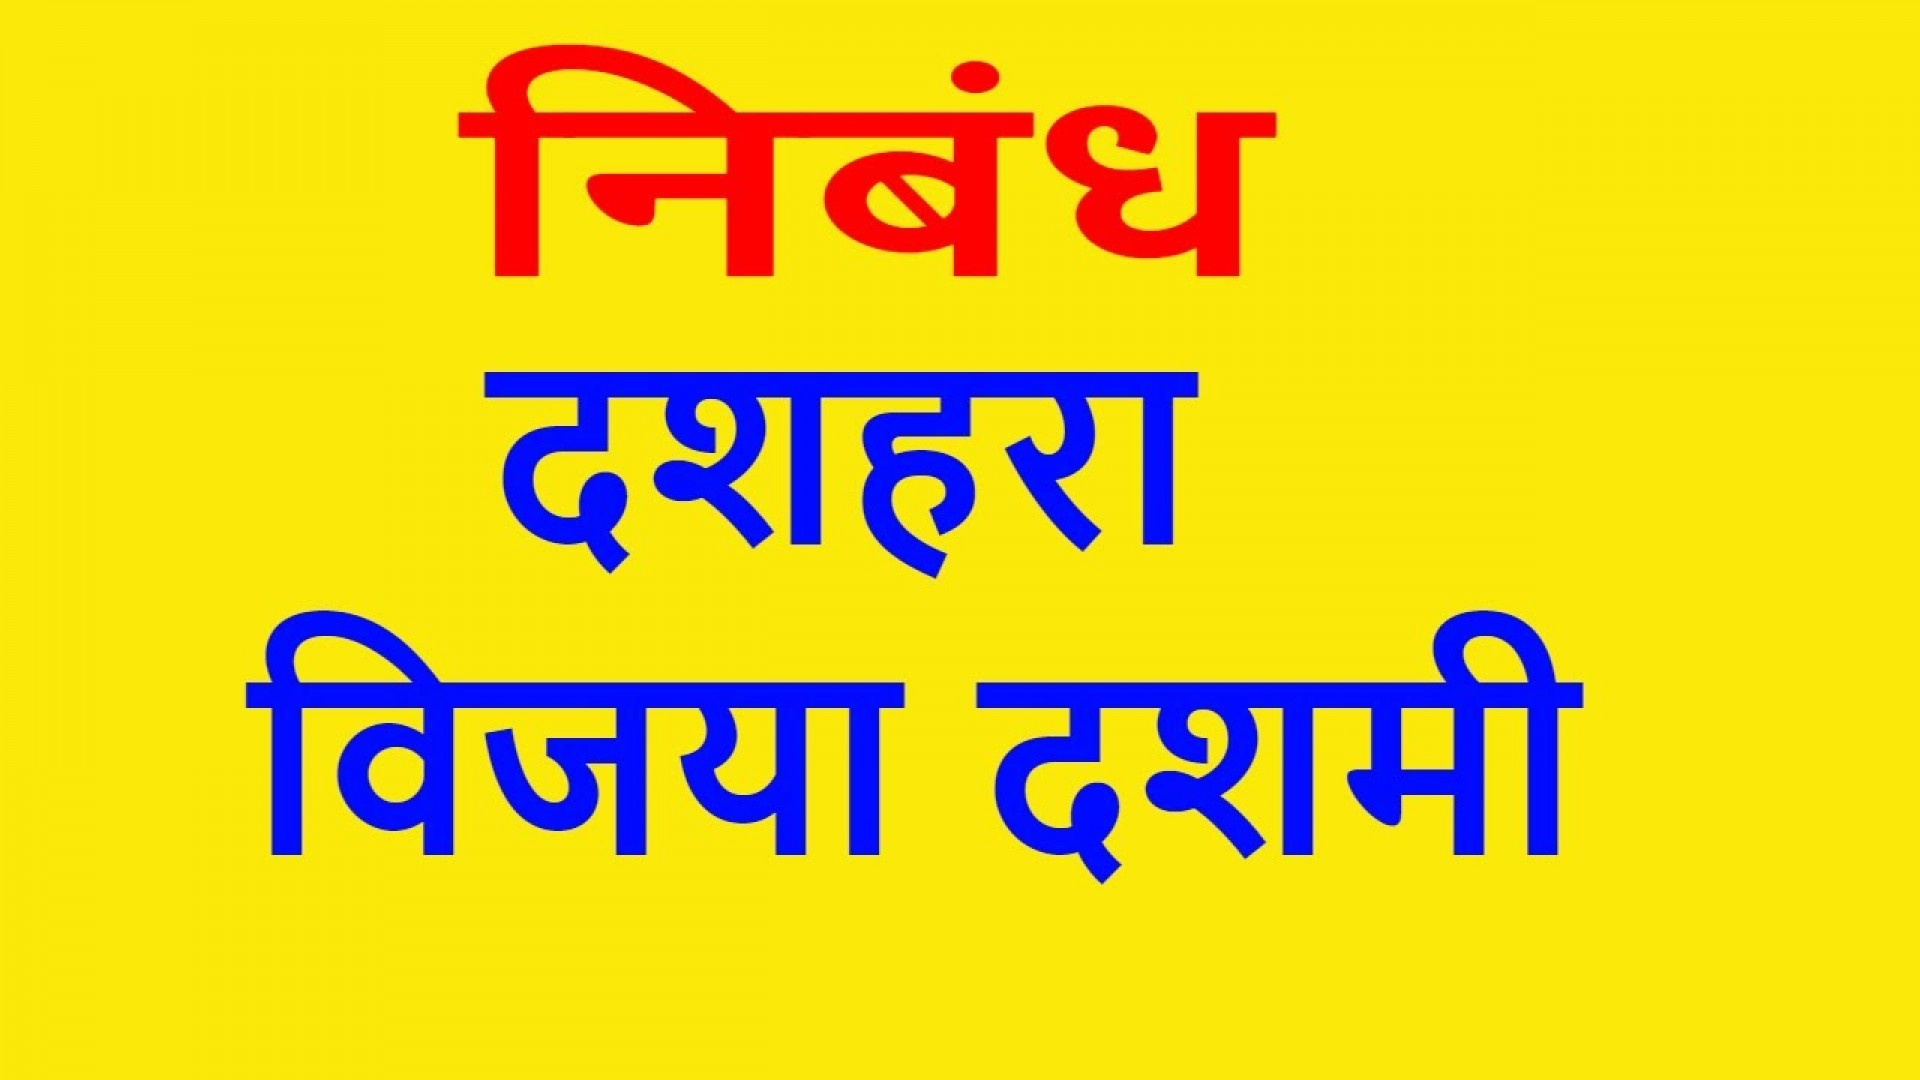 019 Essay Example Maxresdefault On Dussehra Festival In Surprising English 1920